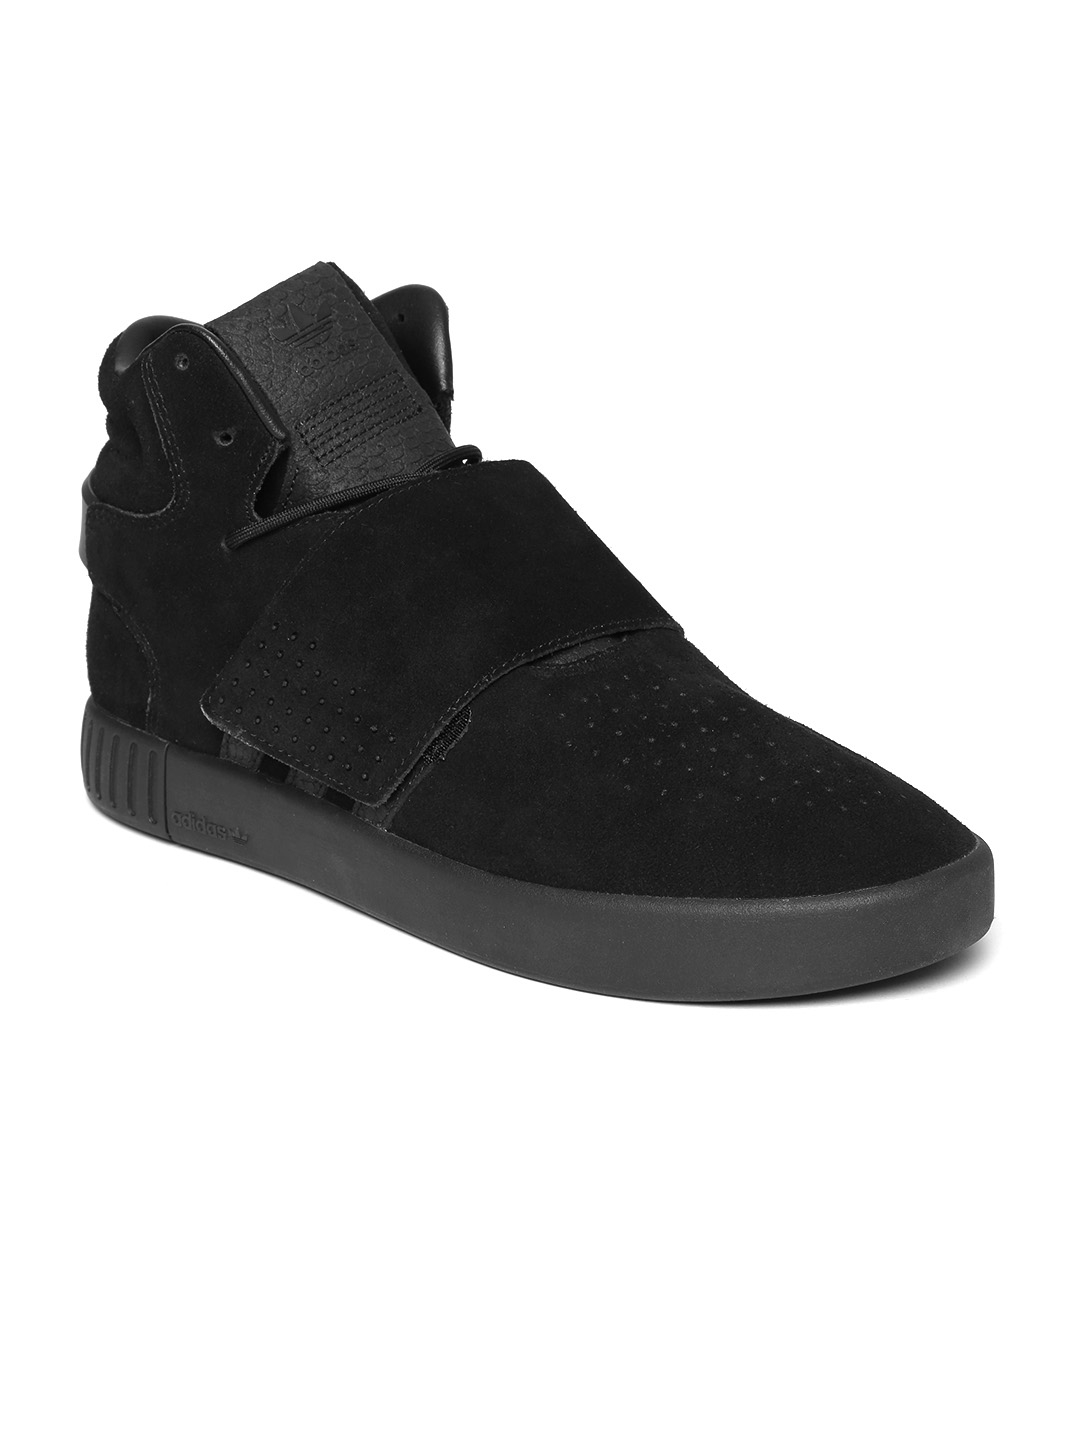 huge selection of 31e38 a25a1 ADIDAS Originals Men Black Tubular Invader Strap Leather Mid-Top Sneakers